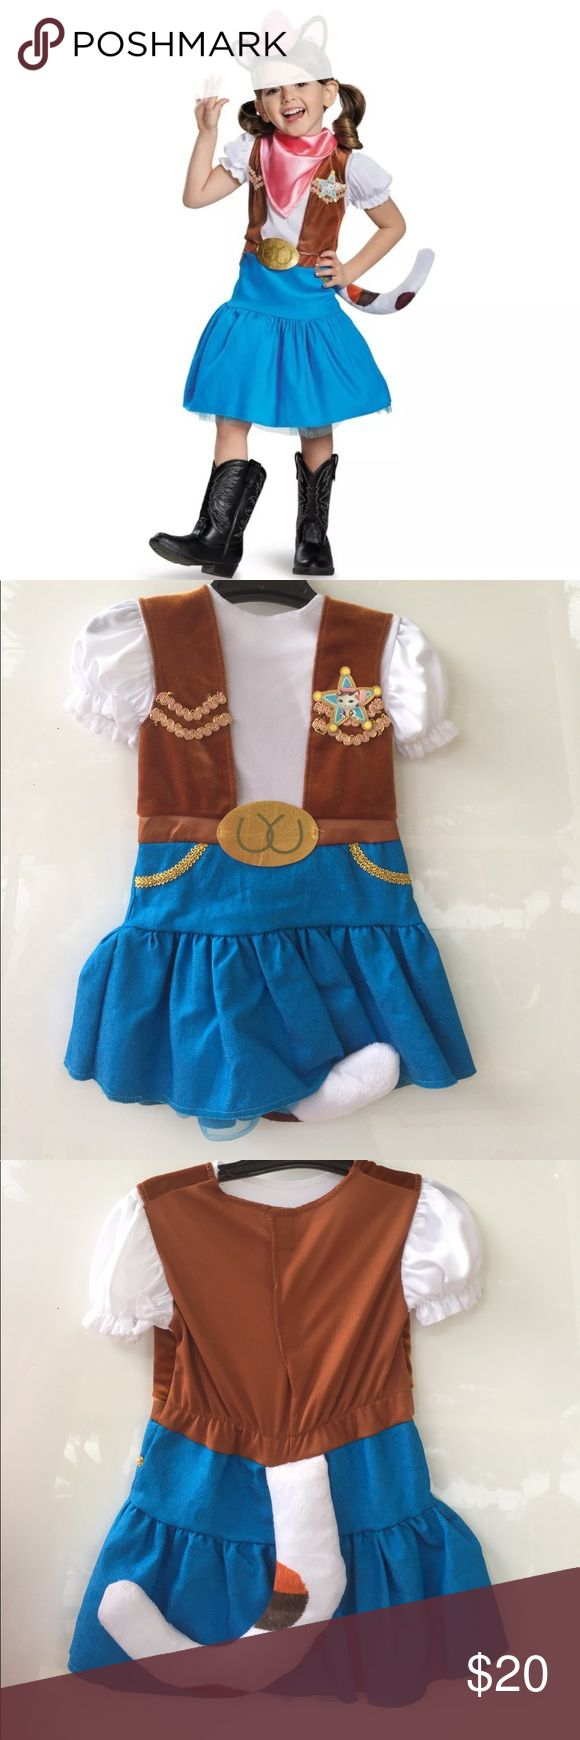 """Sheriff Callie Toddler Girls Costume size 2T Sheriff Callie Baby Girls Costume size 2T  Includes:  • dress with attached tail •  headpiece  •  bandana  Chest: 20-21""""  Waist: 19-20""""  Waist:20-21""""  Height:33-36""""  Weight 27-30 lbs Costumes Halloween"""